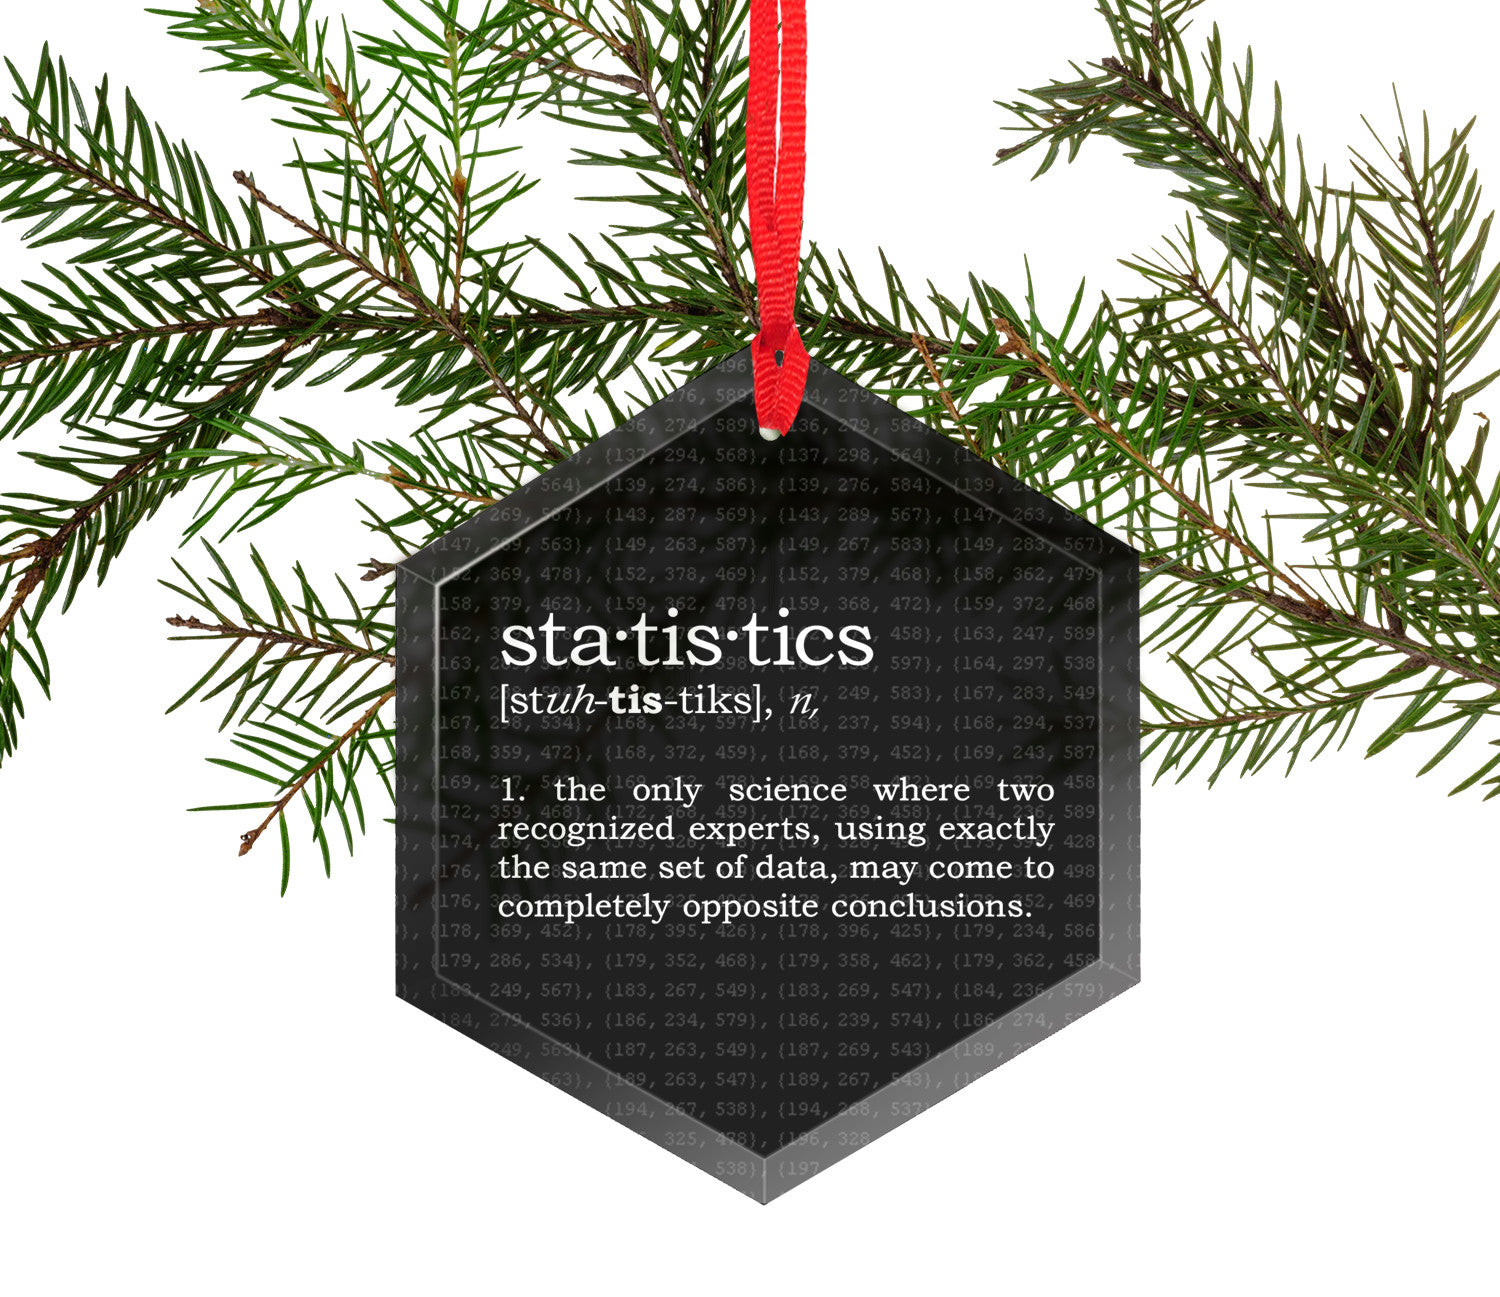 statistics definition funny glass christmas ornament - What Is The Definition Of Christmas